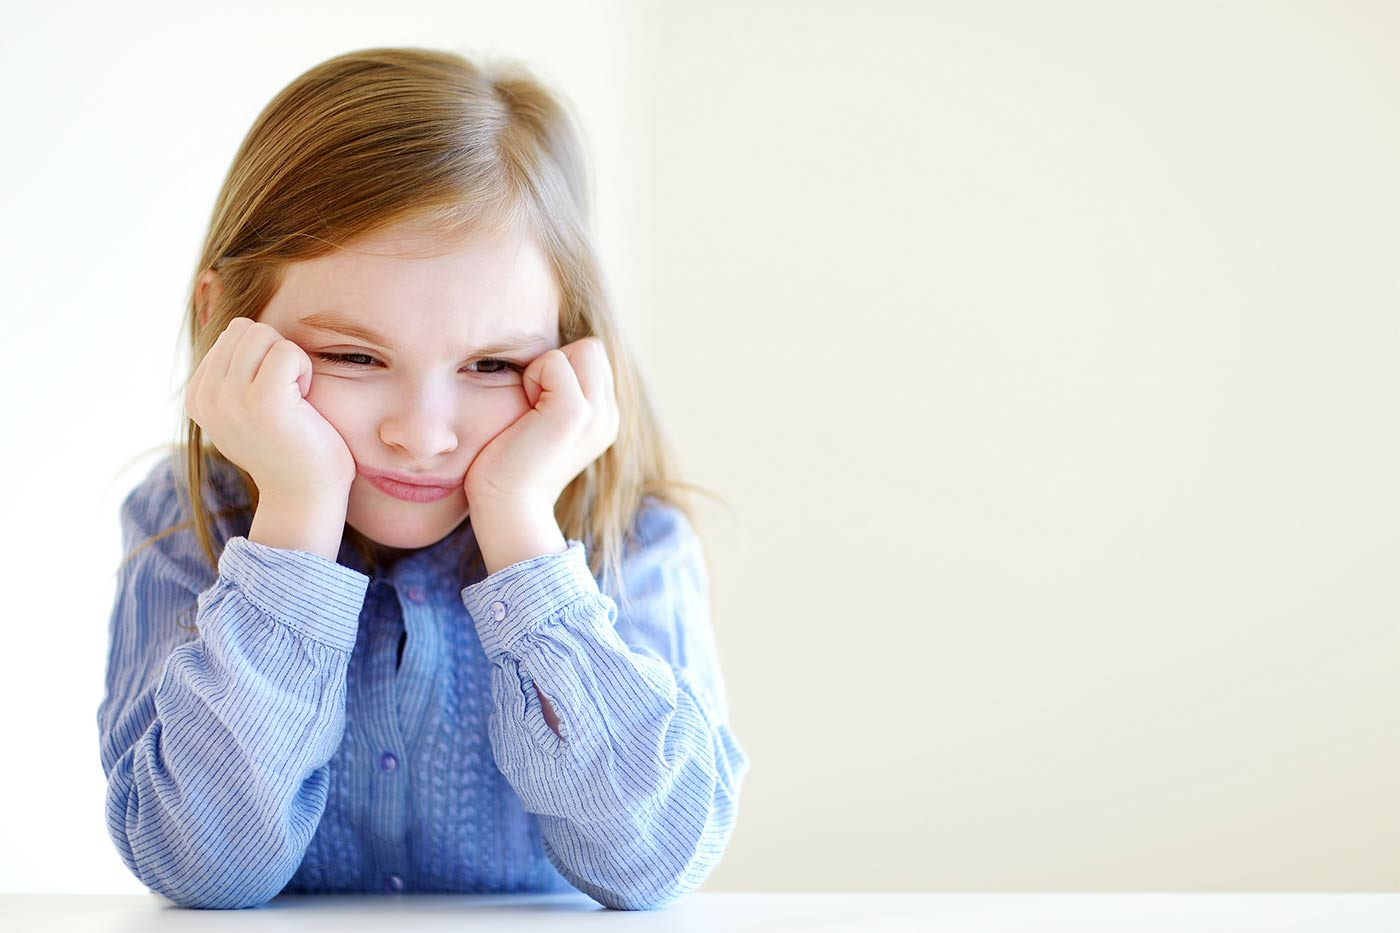 Don't dismiss your child's emotions